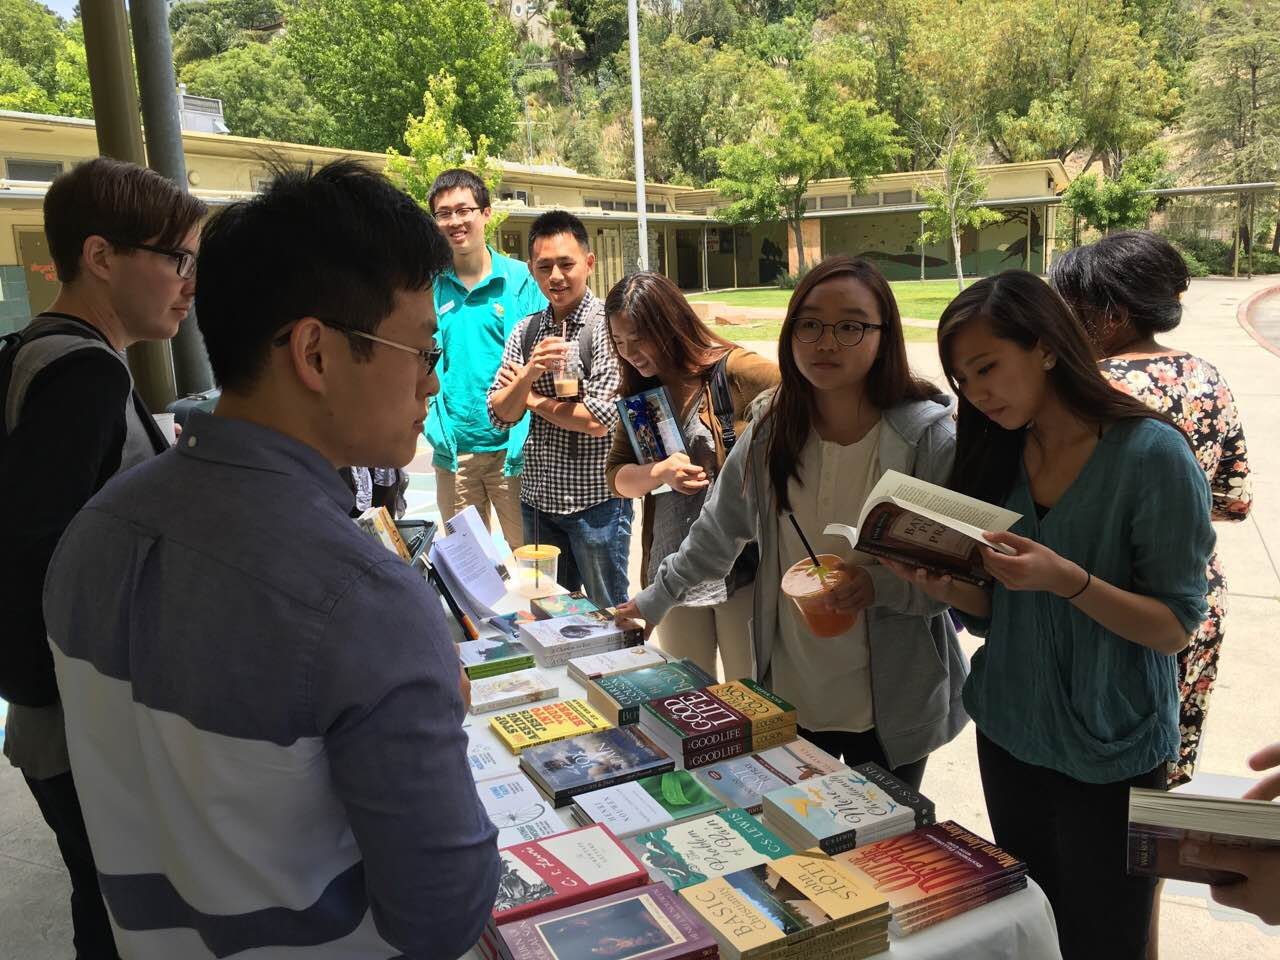 A book table at our UCLA church.